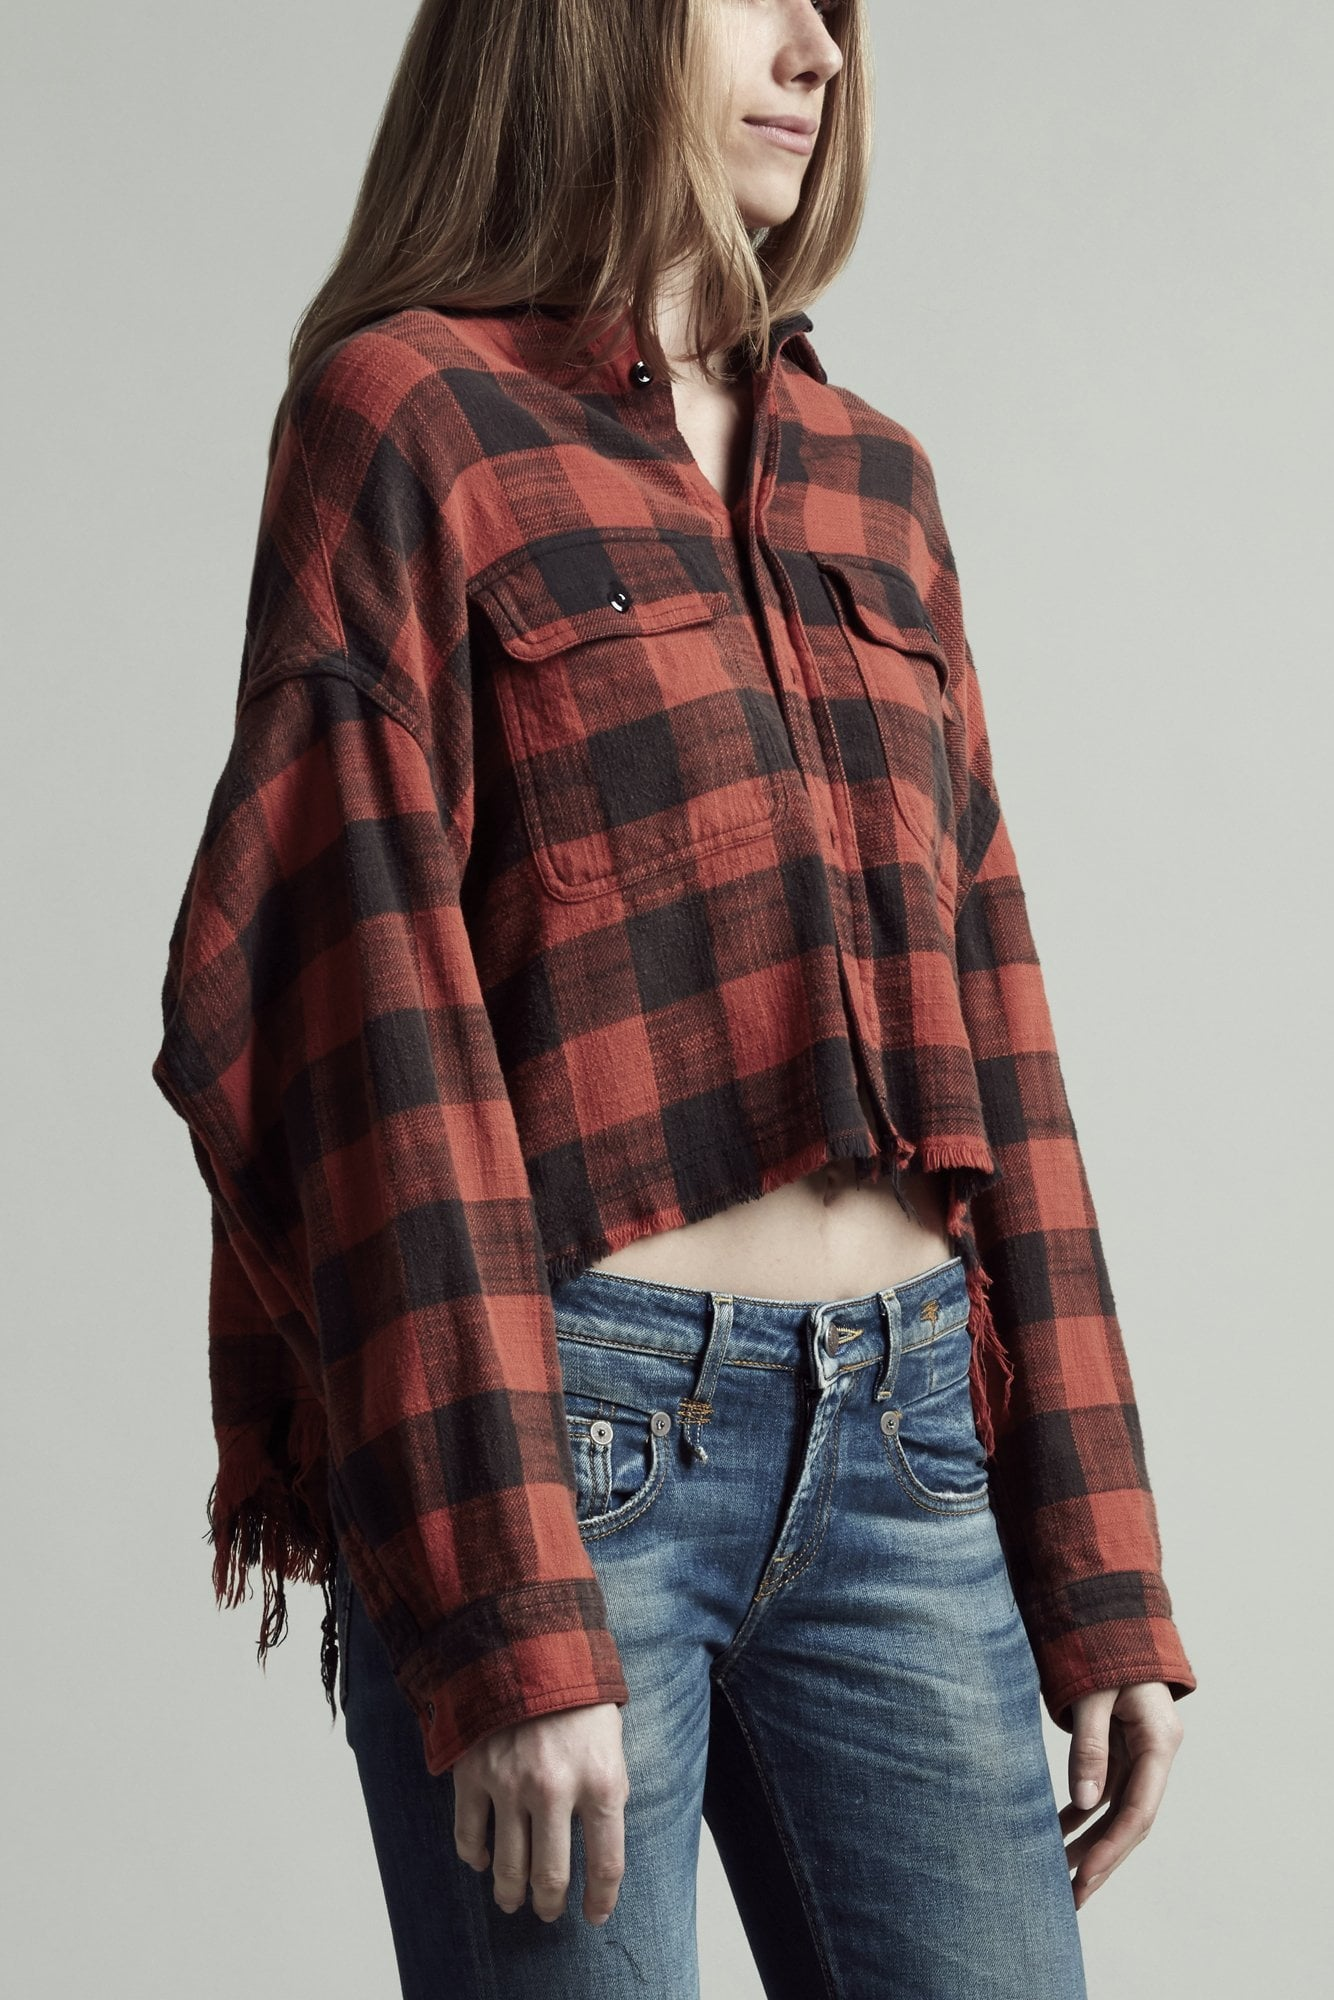 Cropped Work Shirt - Red Plaid